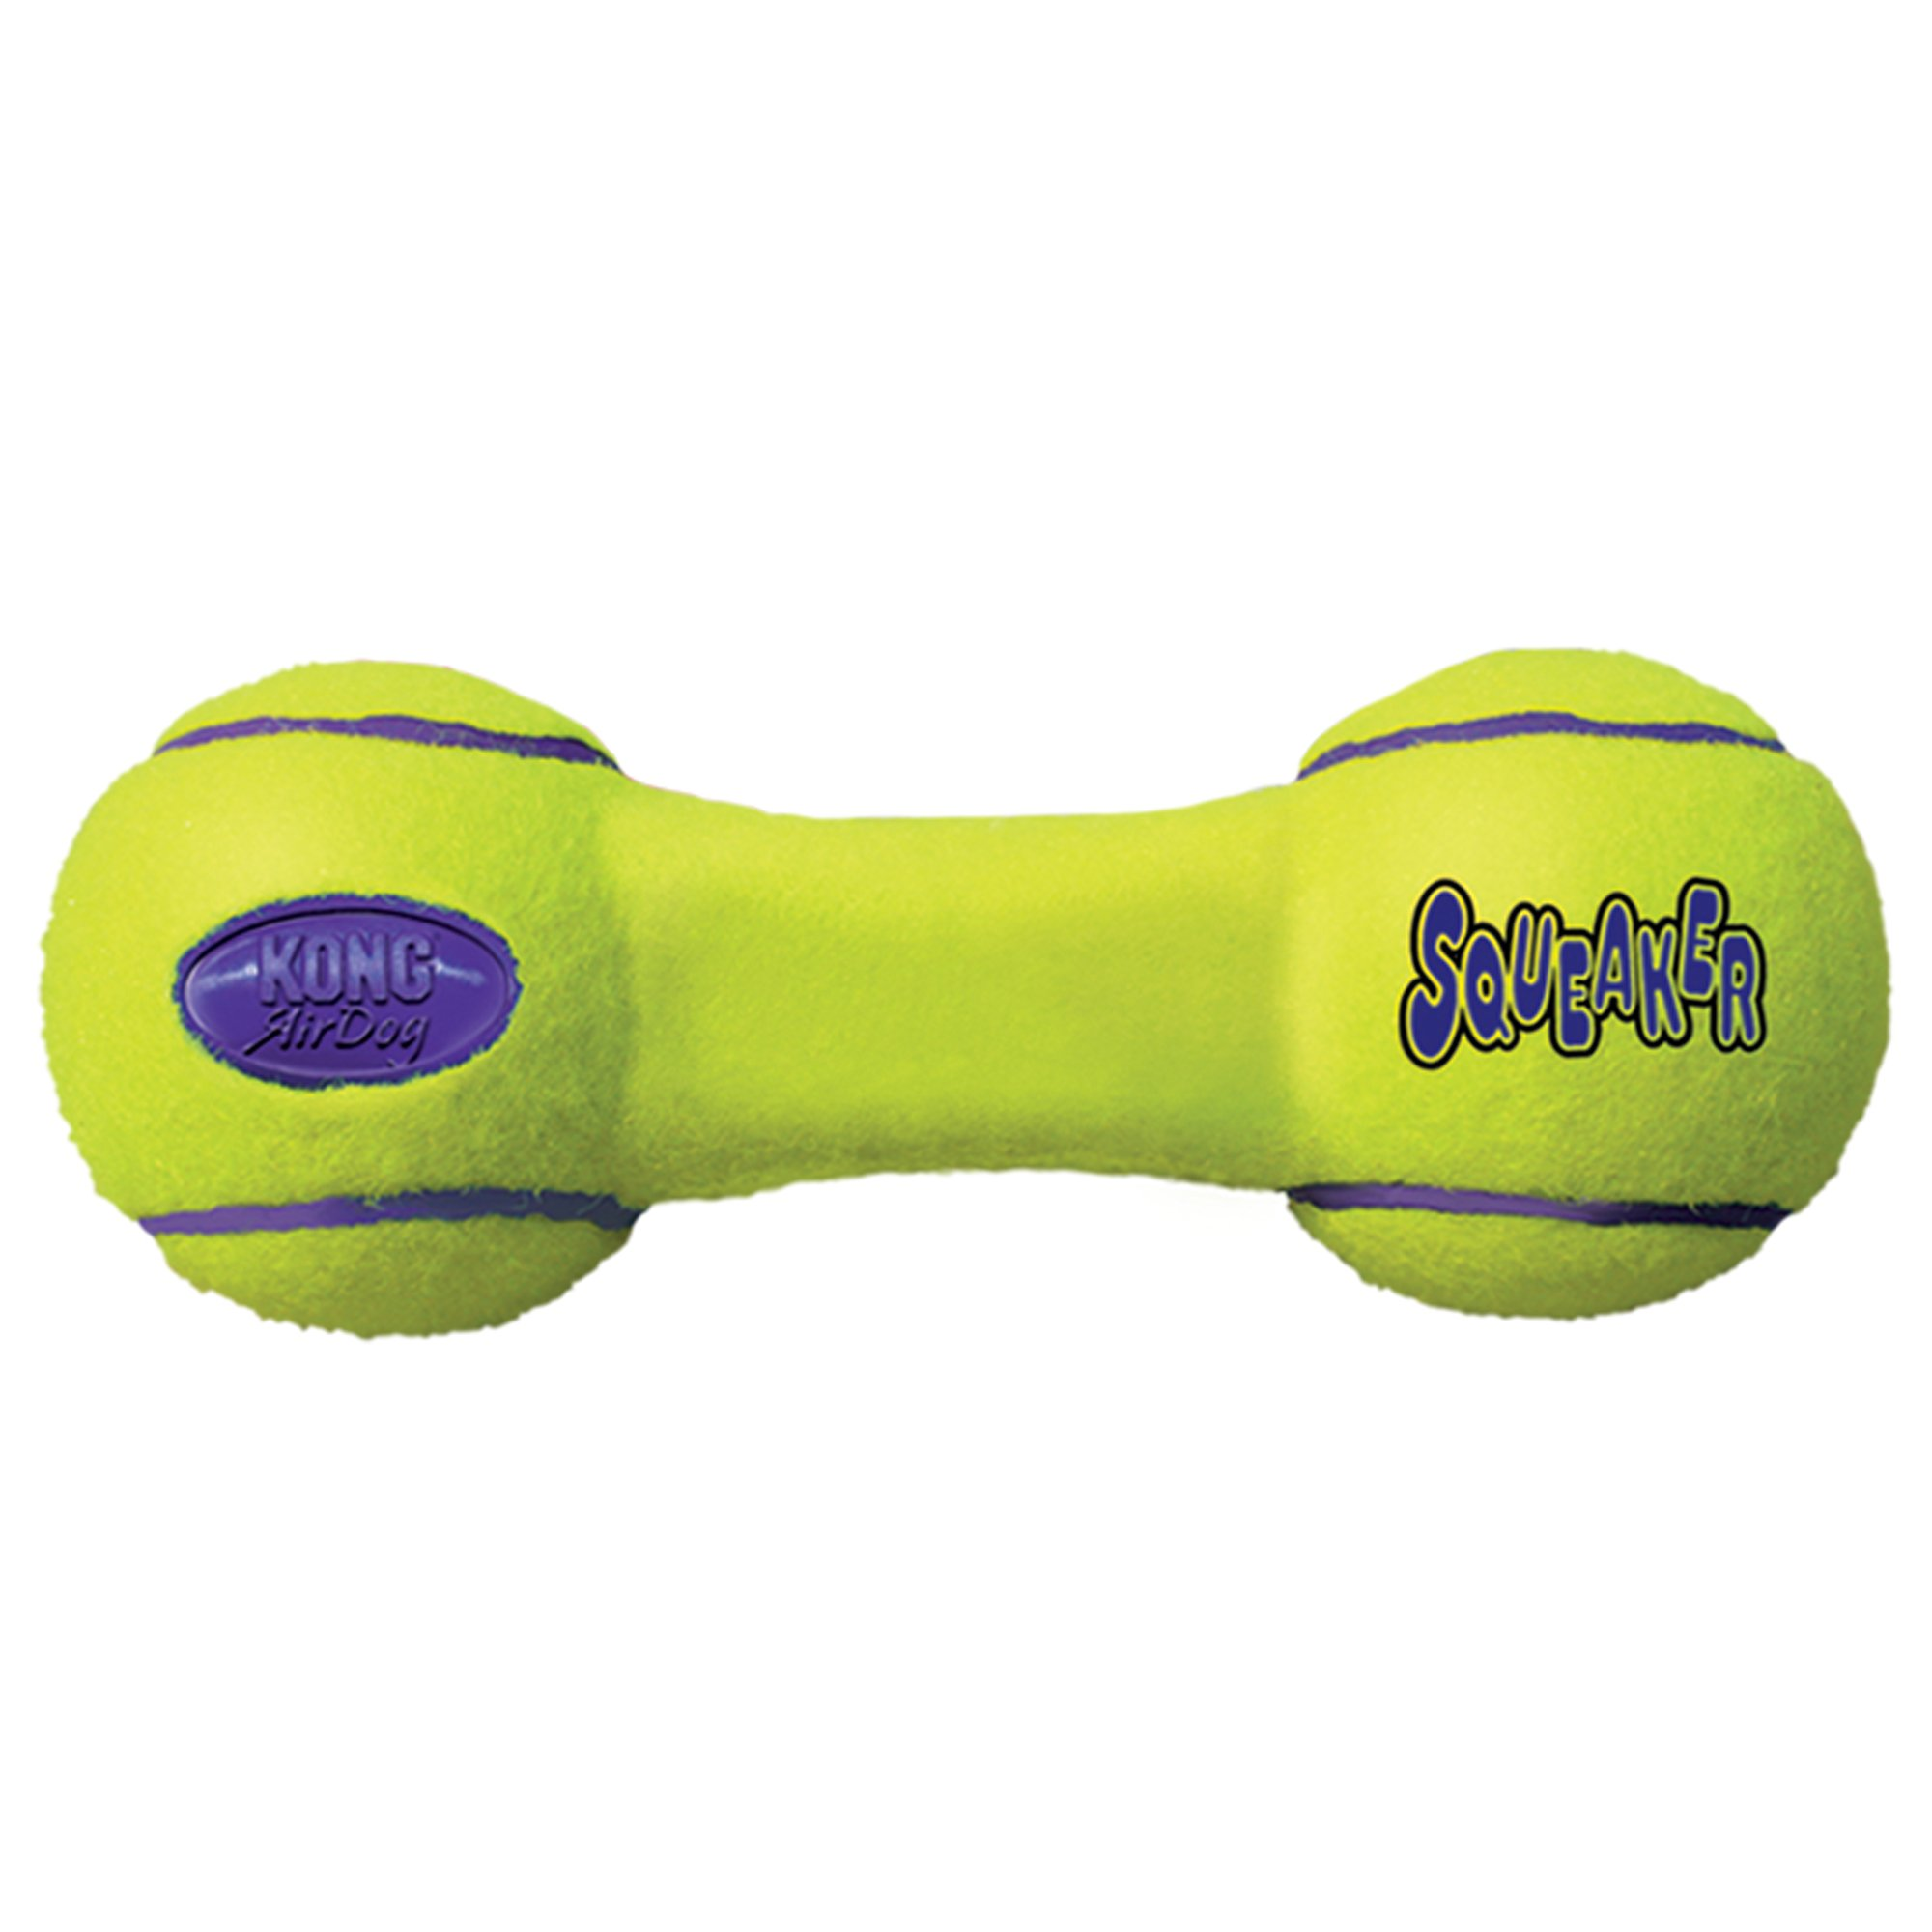 Mammoth Pet Products ® is a leading innovator and manufacturer of premium dog toys. Since , we have been passionate about developing toys your dogs will LOVE!